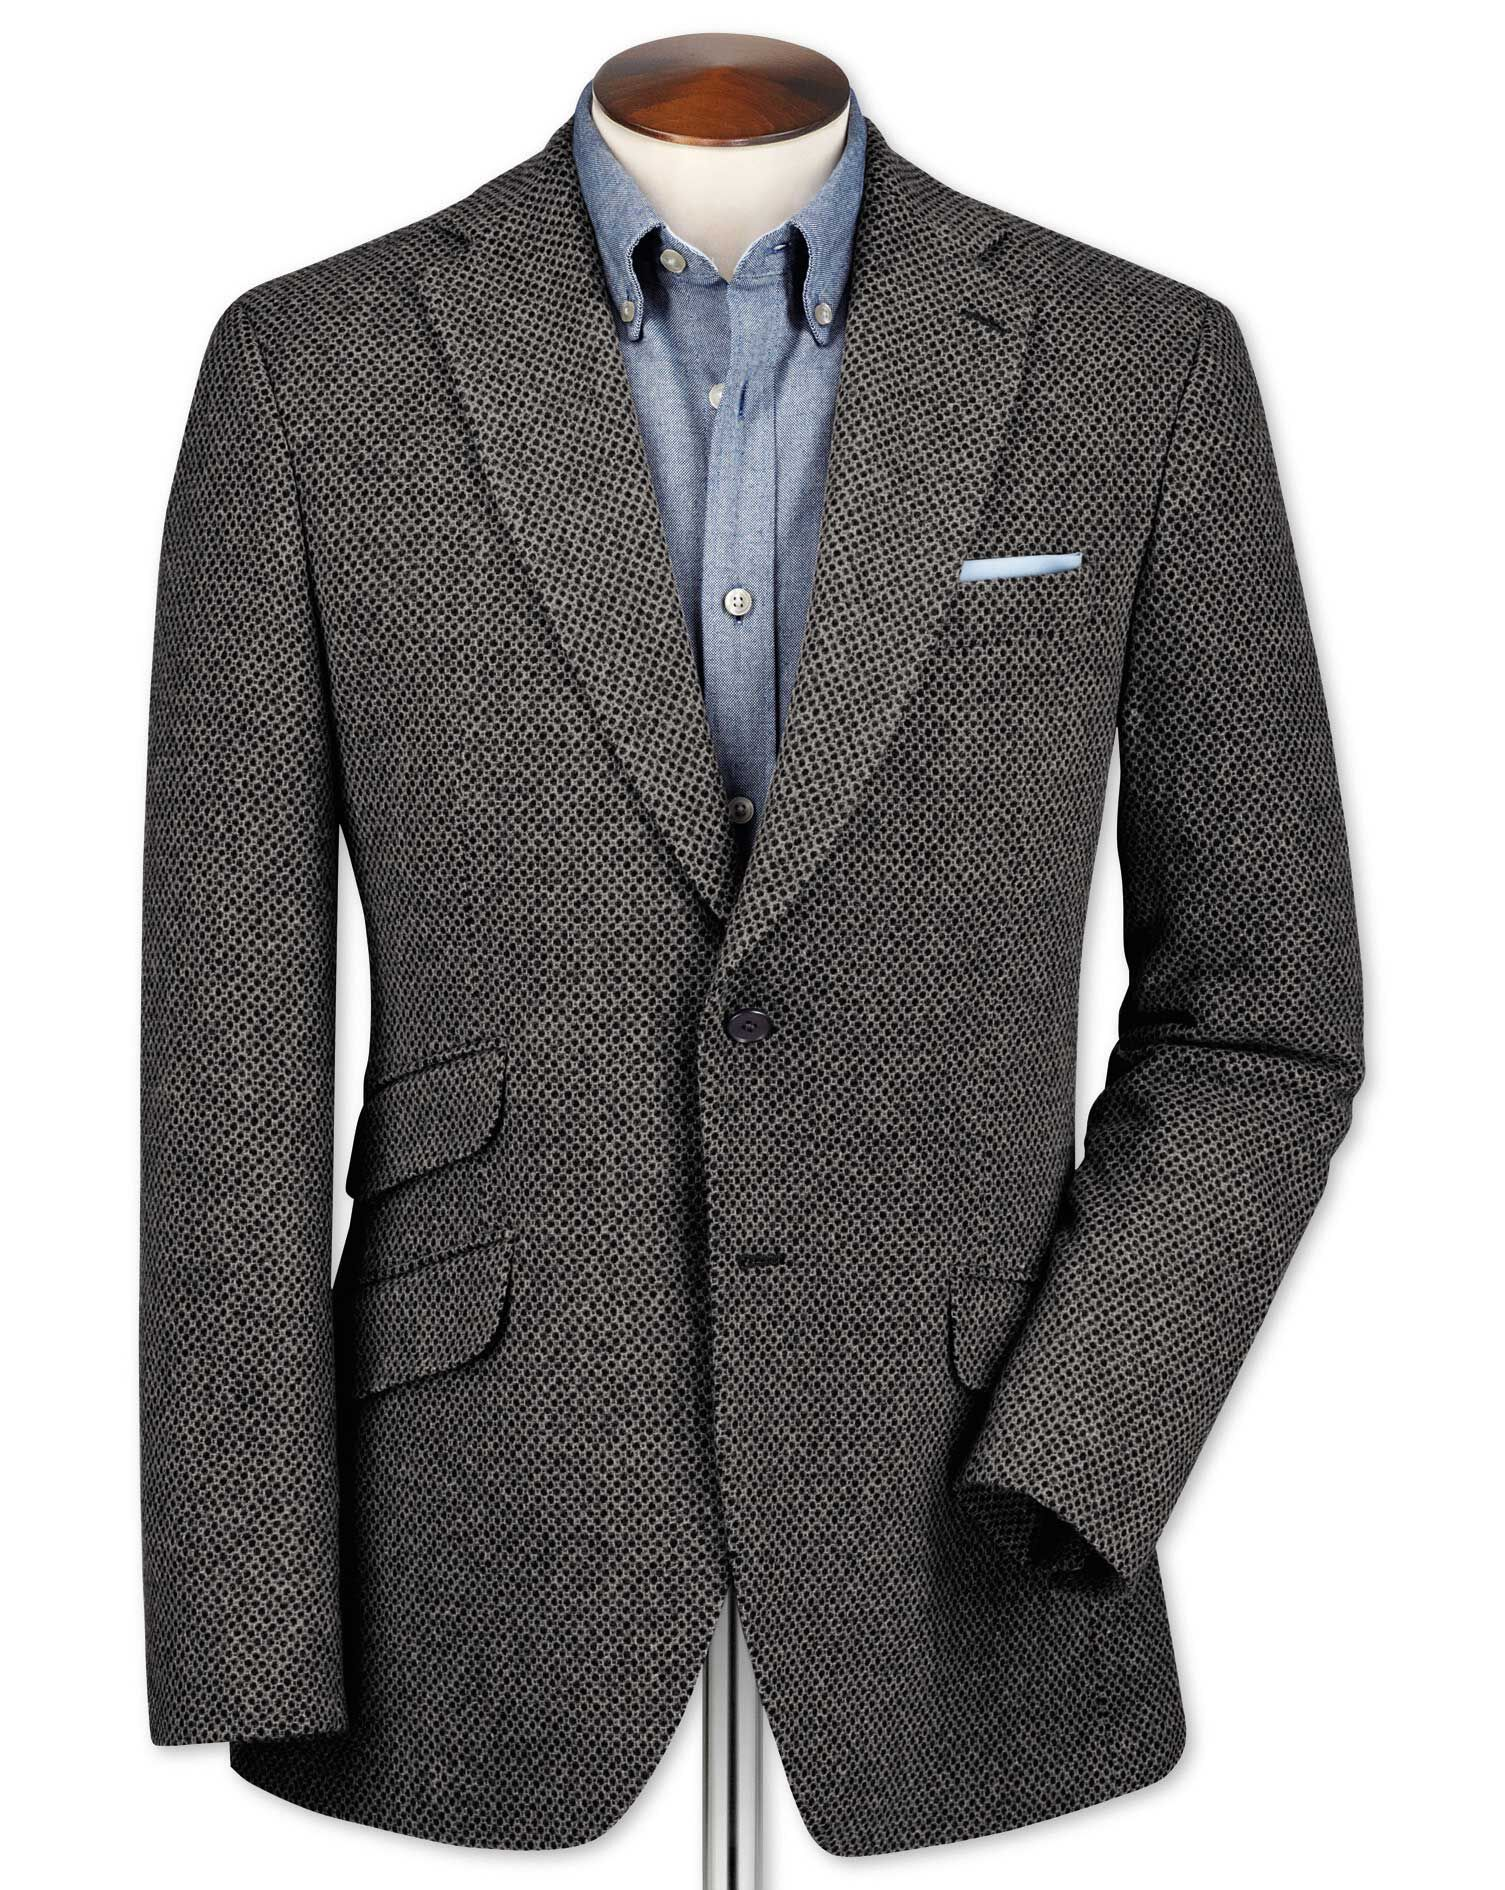 Classic Fit Grey Luxury Border Tweed Wool Jacket Size 48 Regular by Charles Tyrwhitt